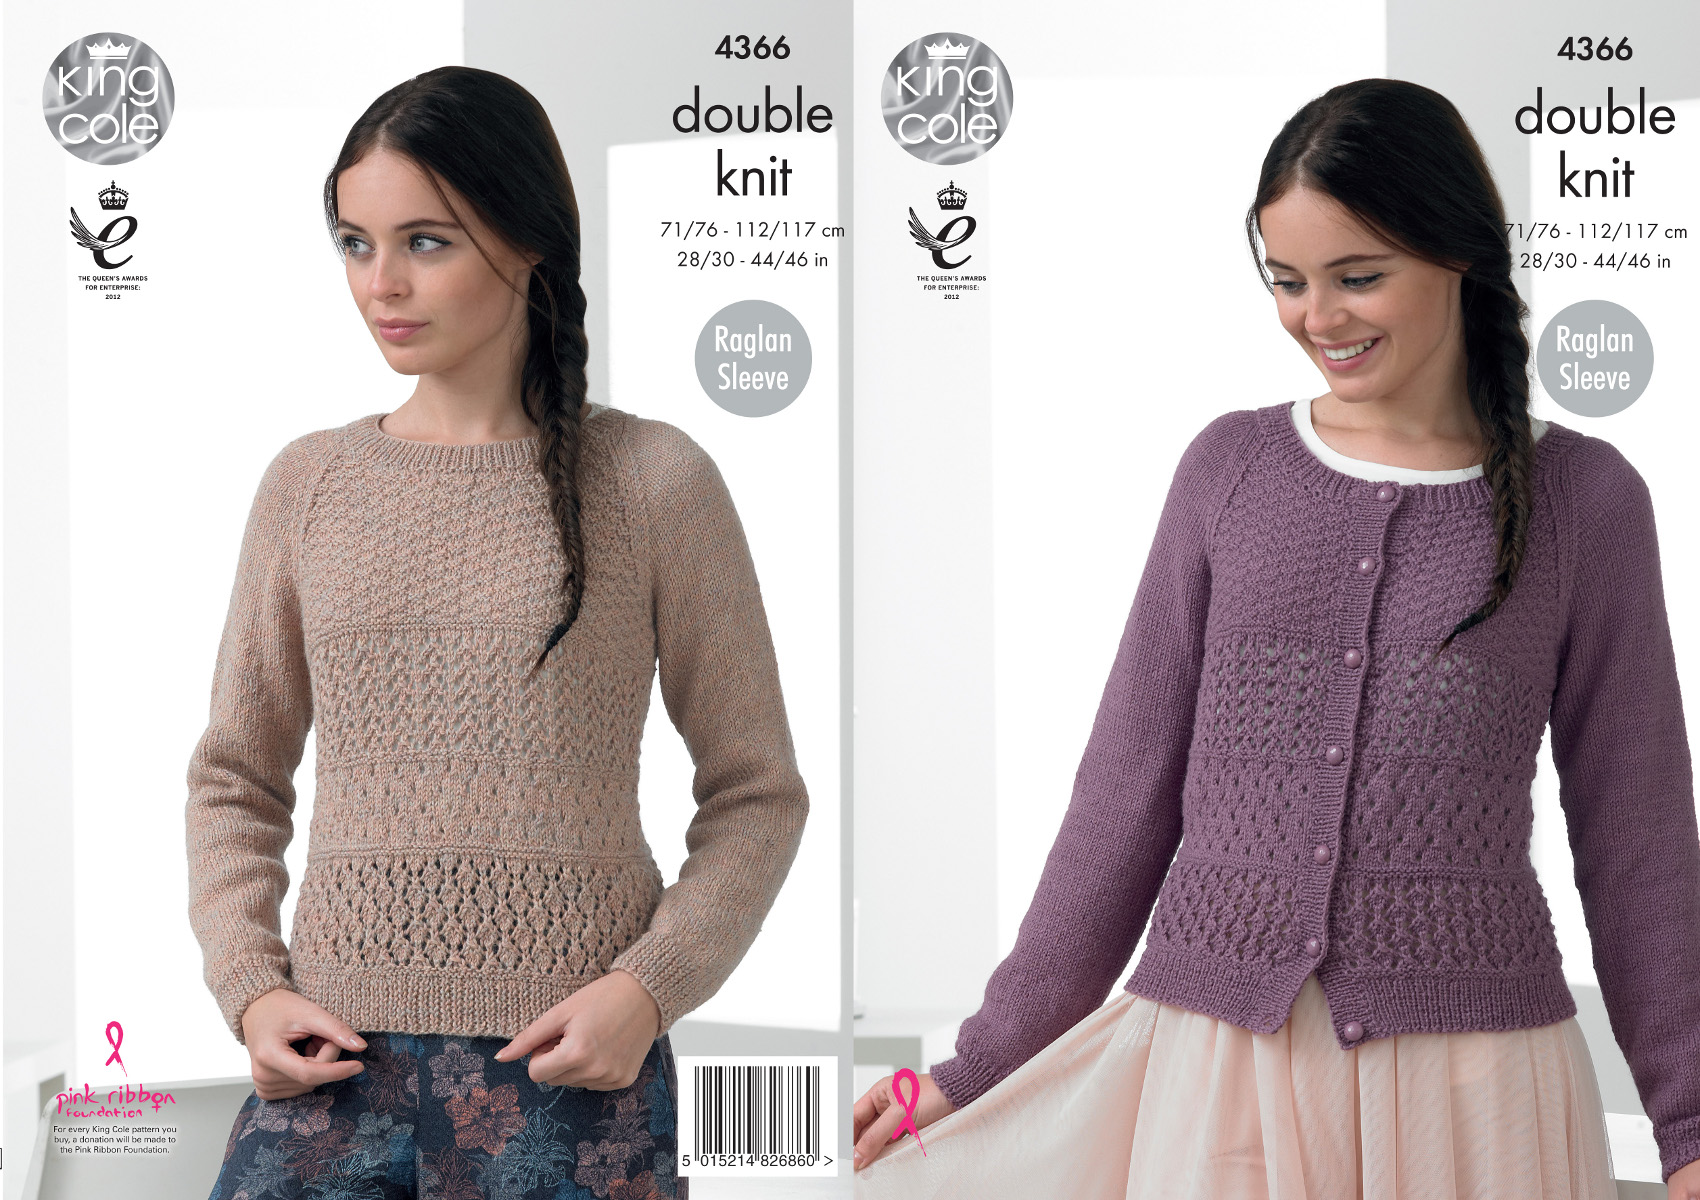 Raglan Sleeve Cardigan Jumper Sweater Ladies Knitting Pattern King Cole DK 4366